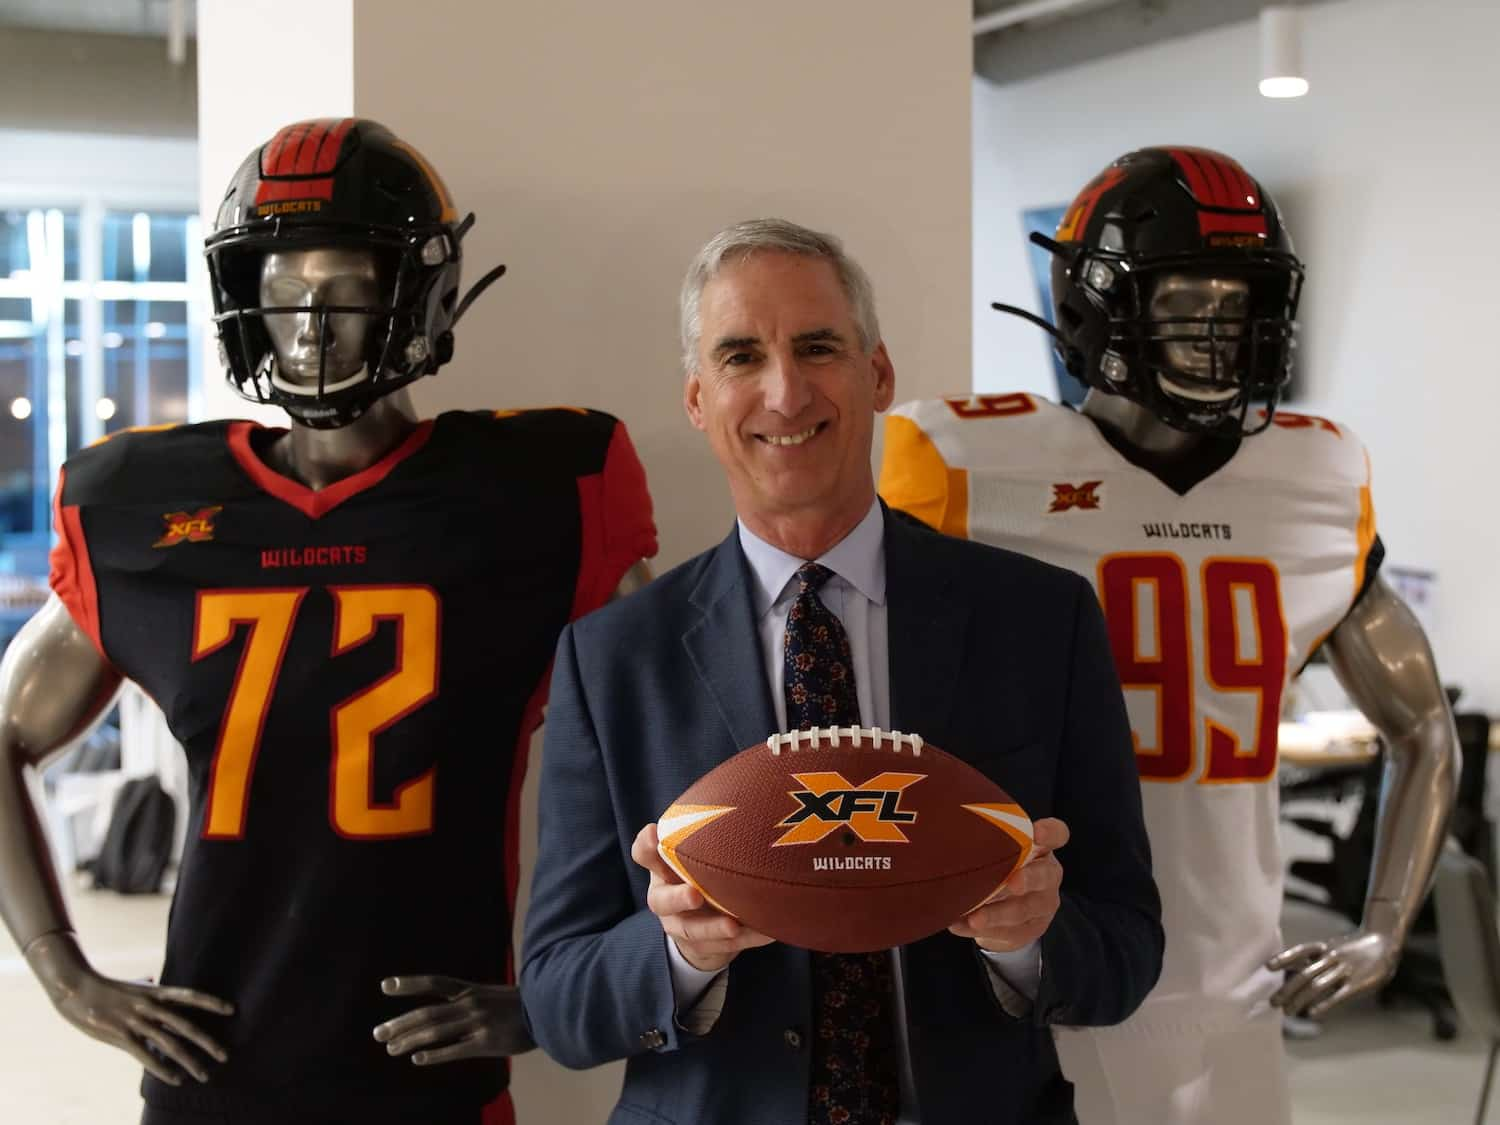 XFL Commissioner Oliver Luck Visits Media In Los Angeles